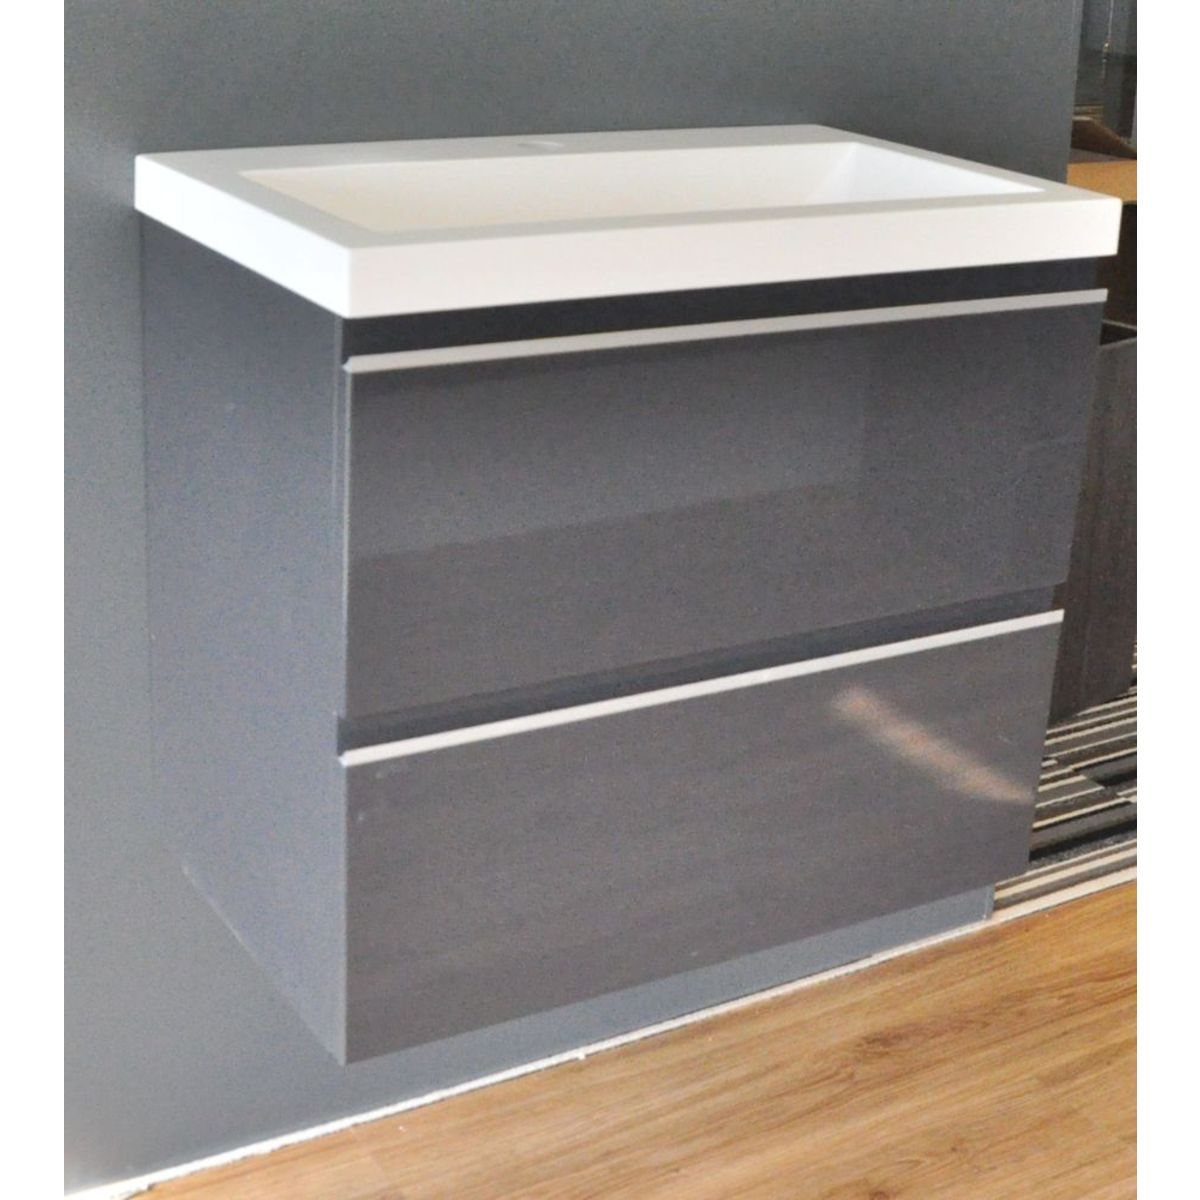 praya wiesbaden meuble sous lavabo 60x36cm sans lavabo gris brillant. Black Bedroom Furniture Sets. Home Design Ideas